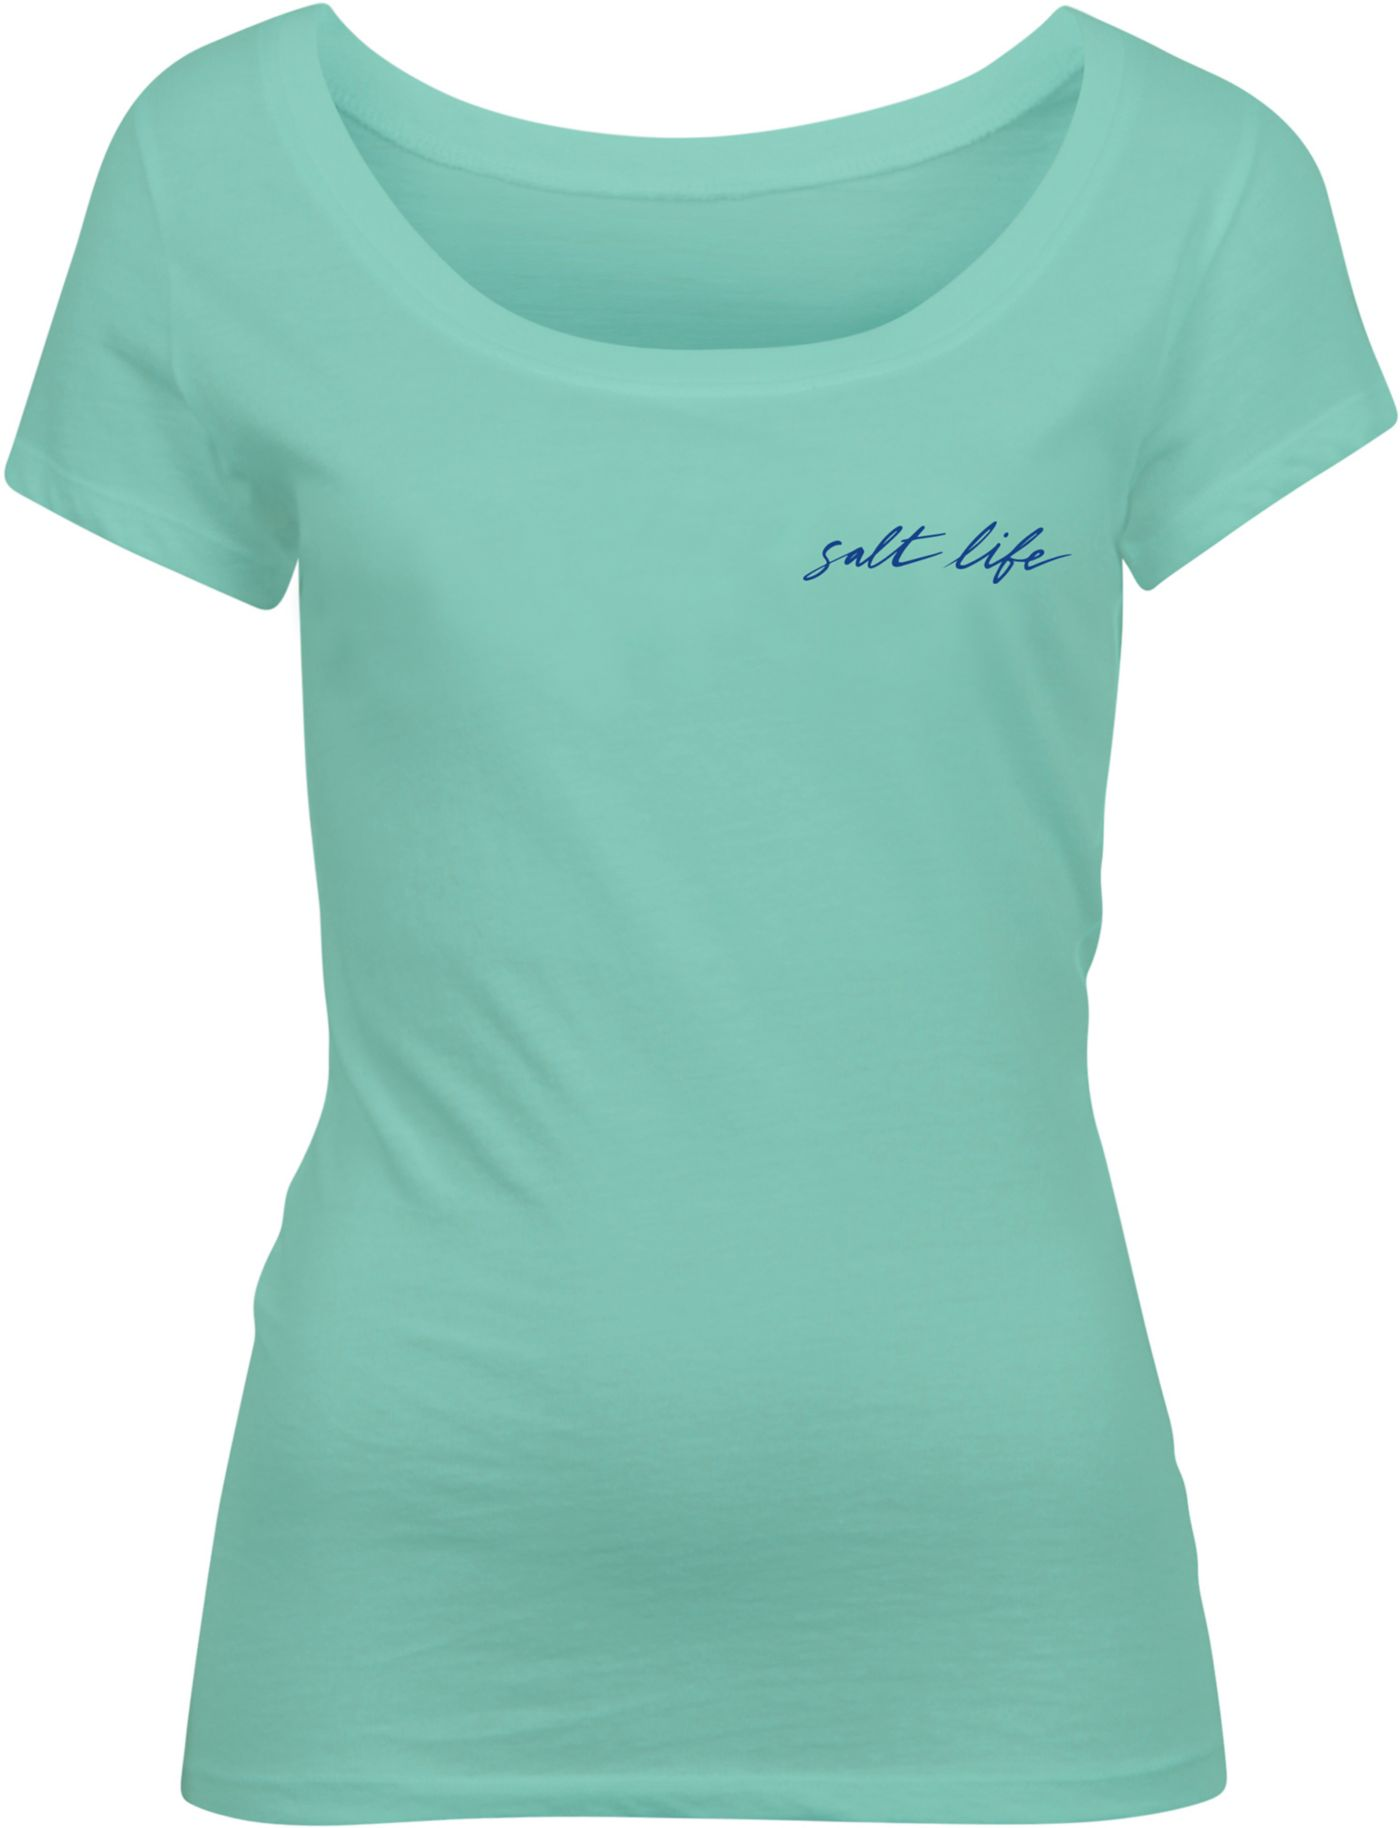 Salt Life Women's Good Times Scoop Neck T-Shirt